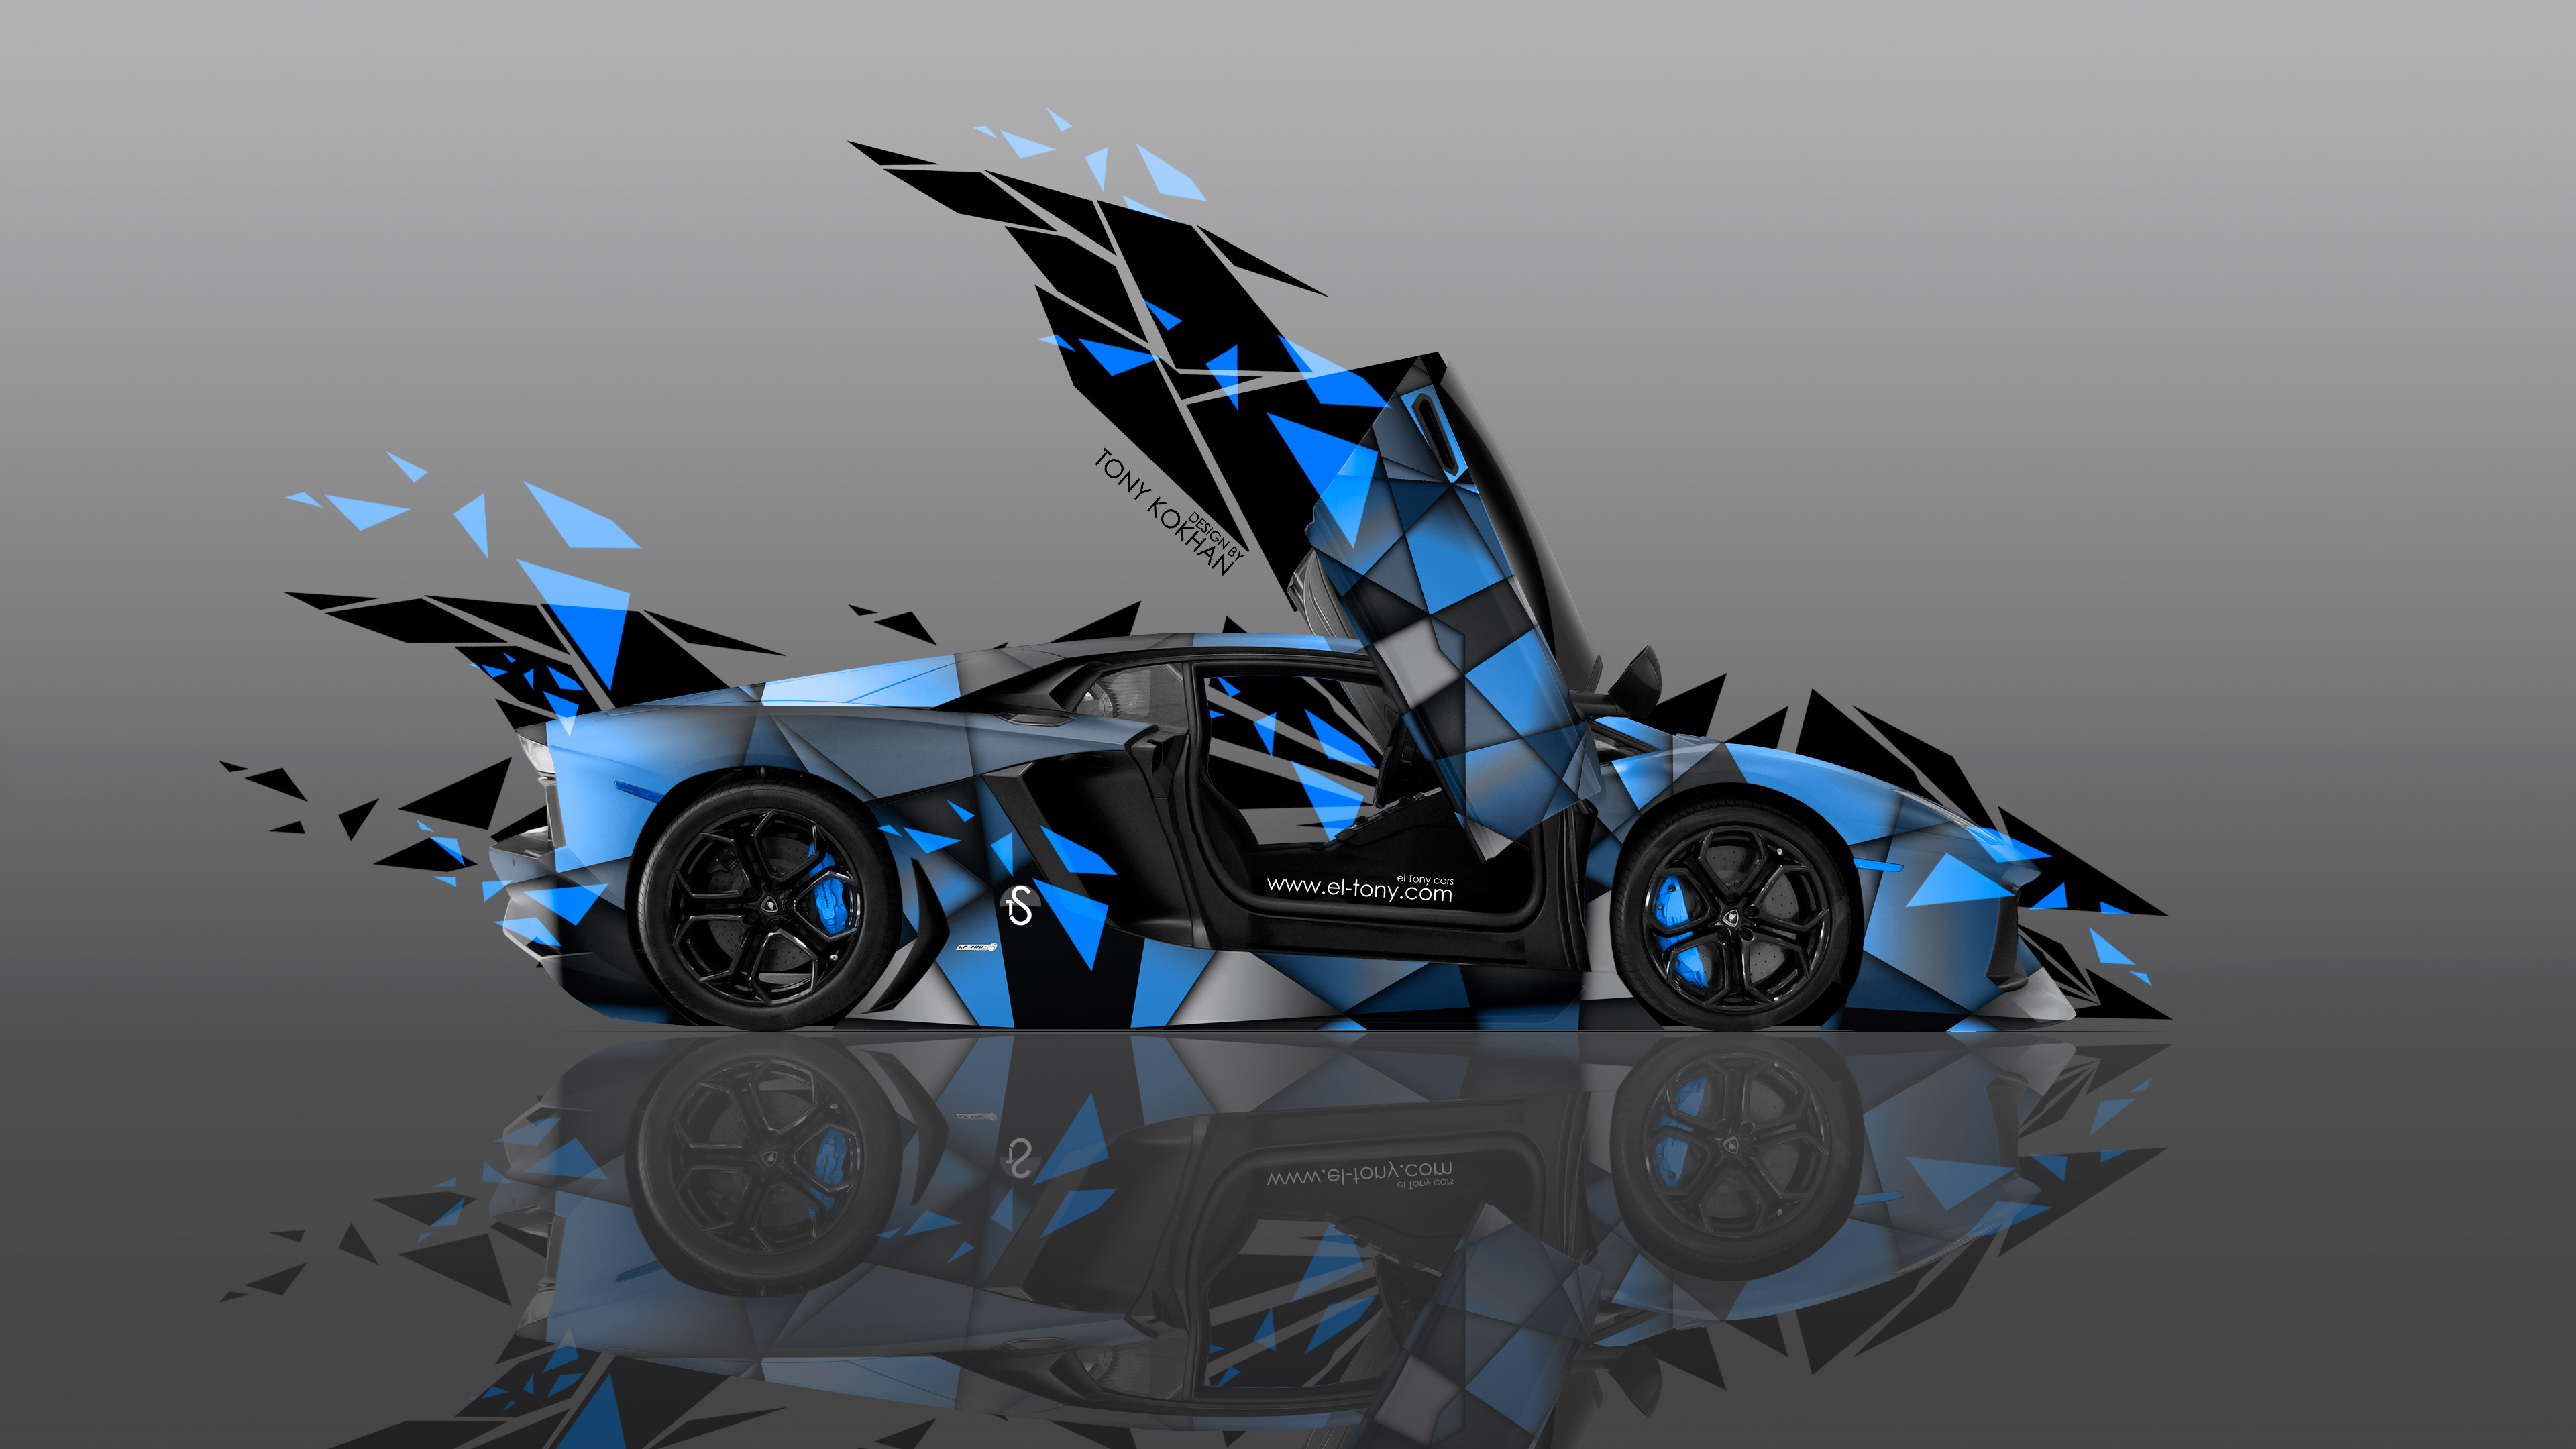 Best Interior Colors For 2017 4k Lamborghini Aventador Side Transformer Abstract Car